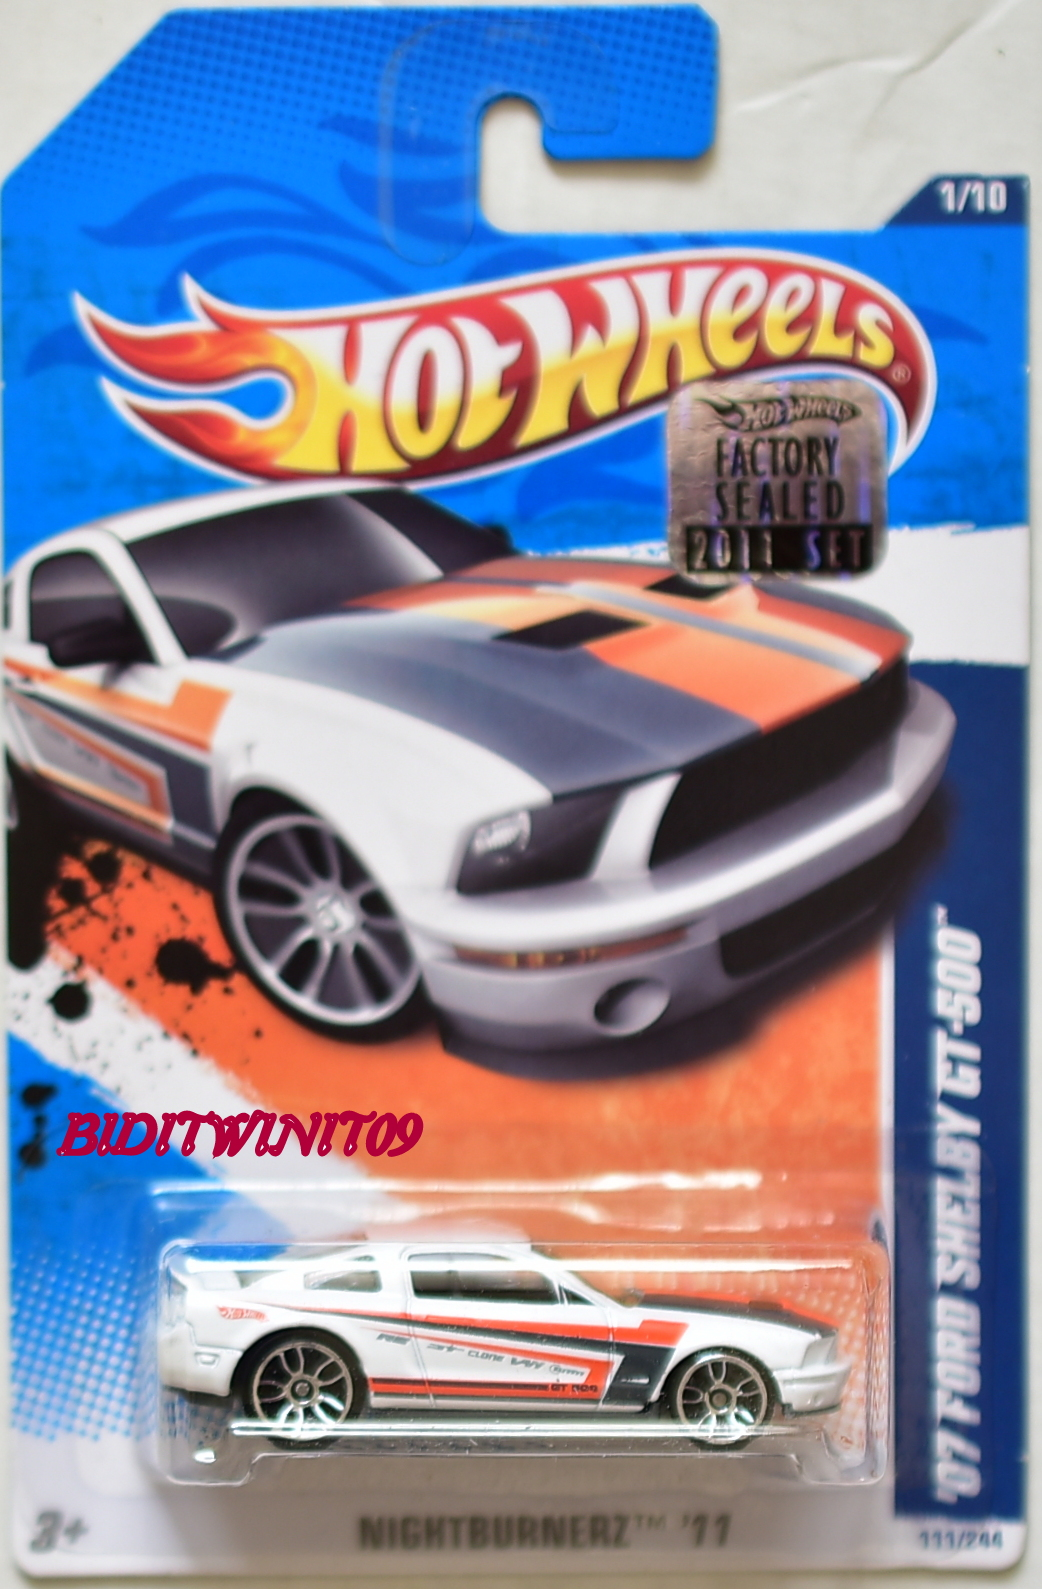 HOT WHEELS 2011 NIGHTBURNERZ '07 FORD SHELBY GT-500 #1/10 WHITE FACTORY SEALED